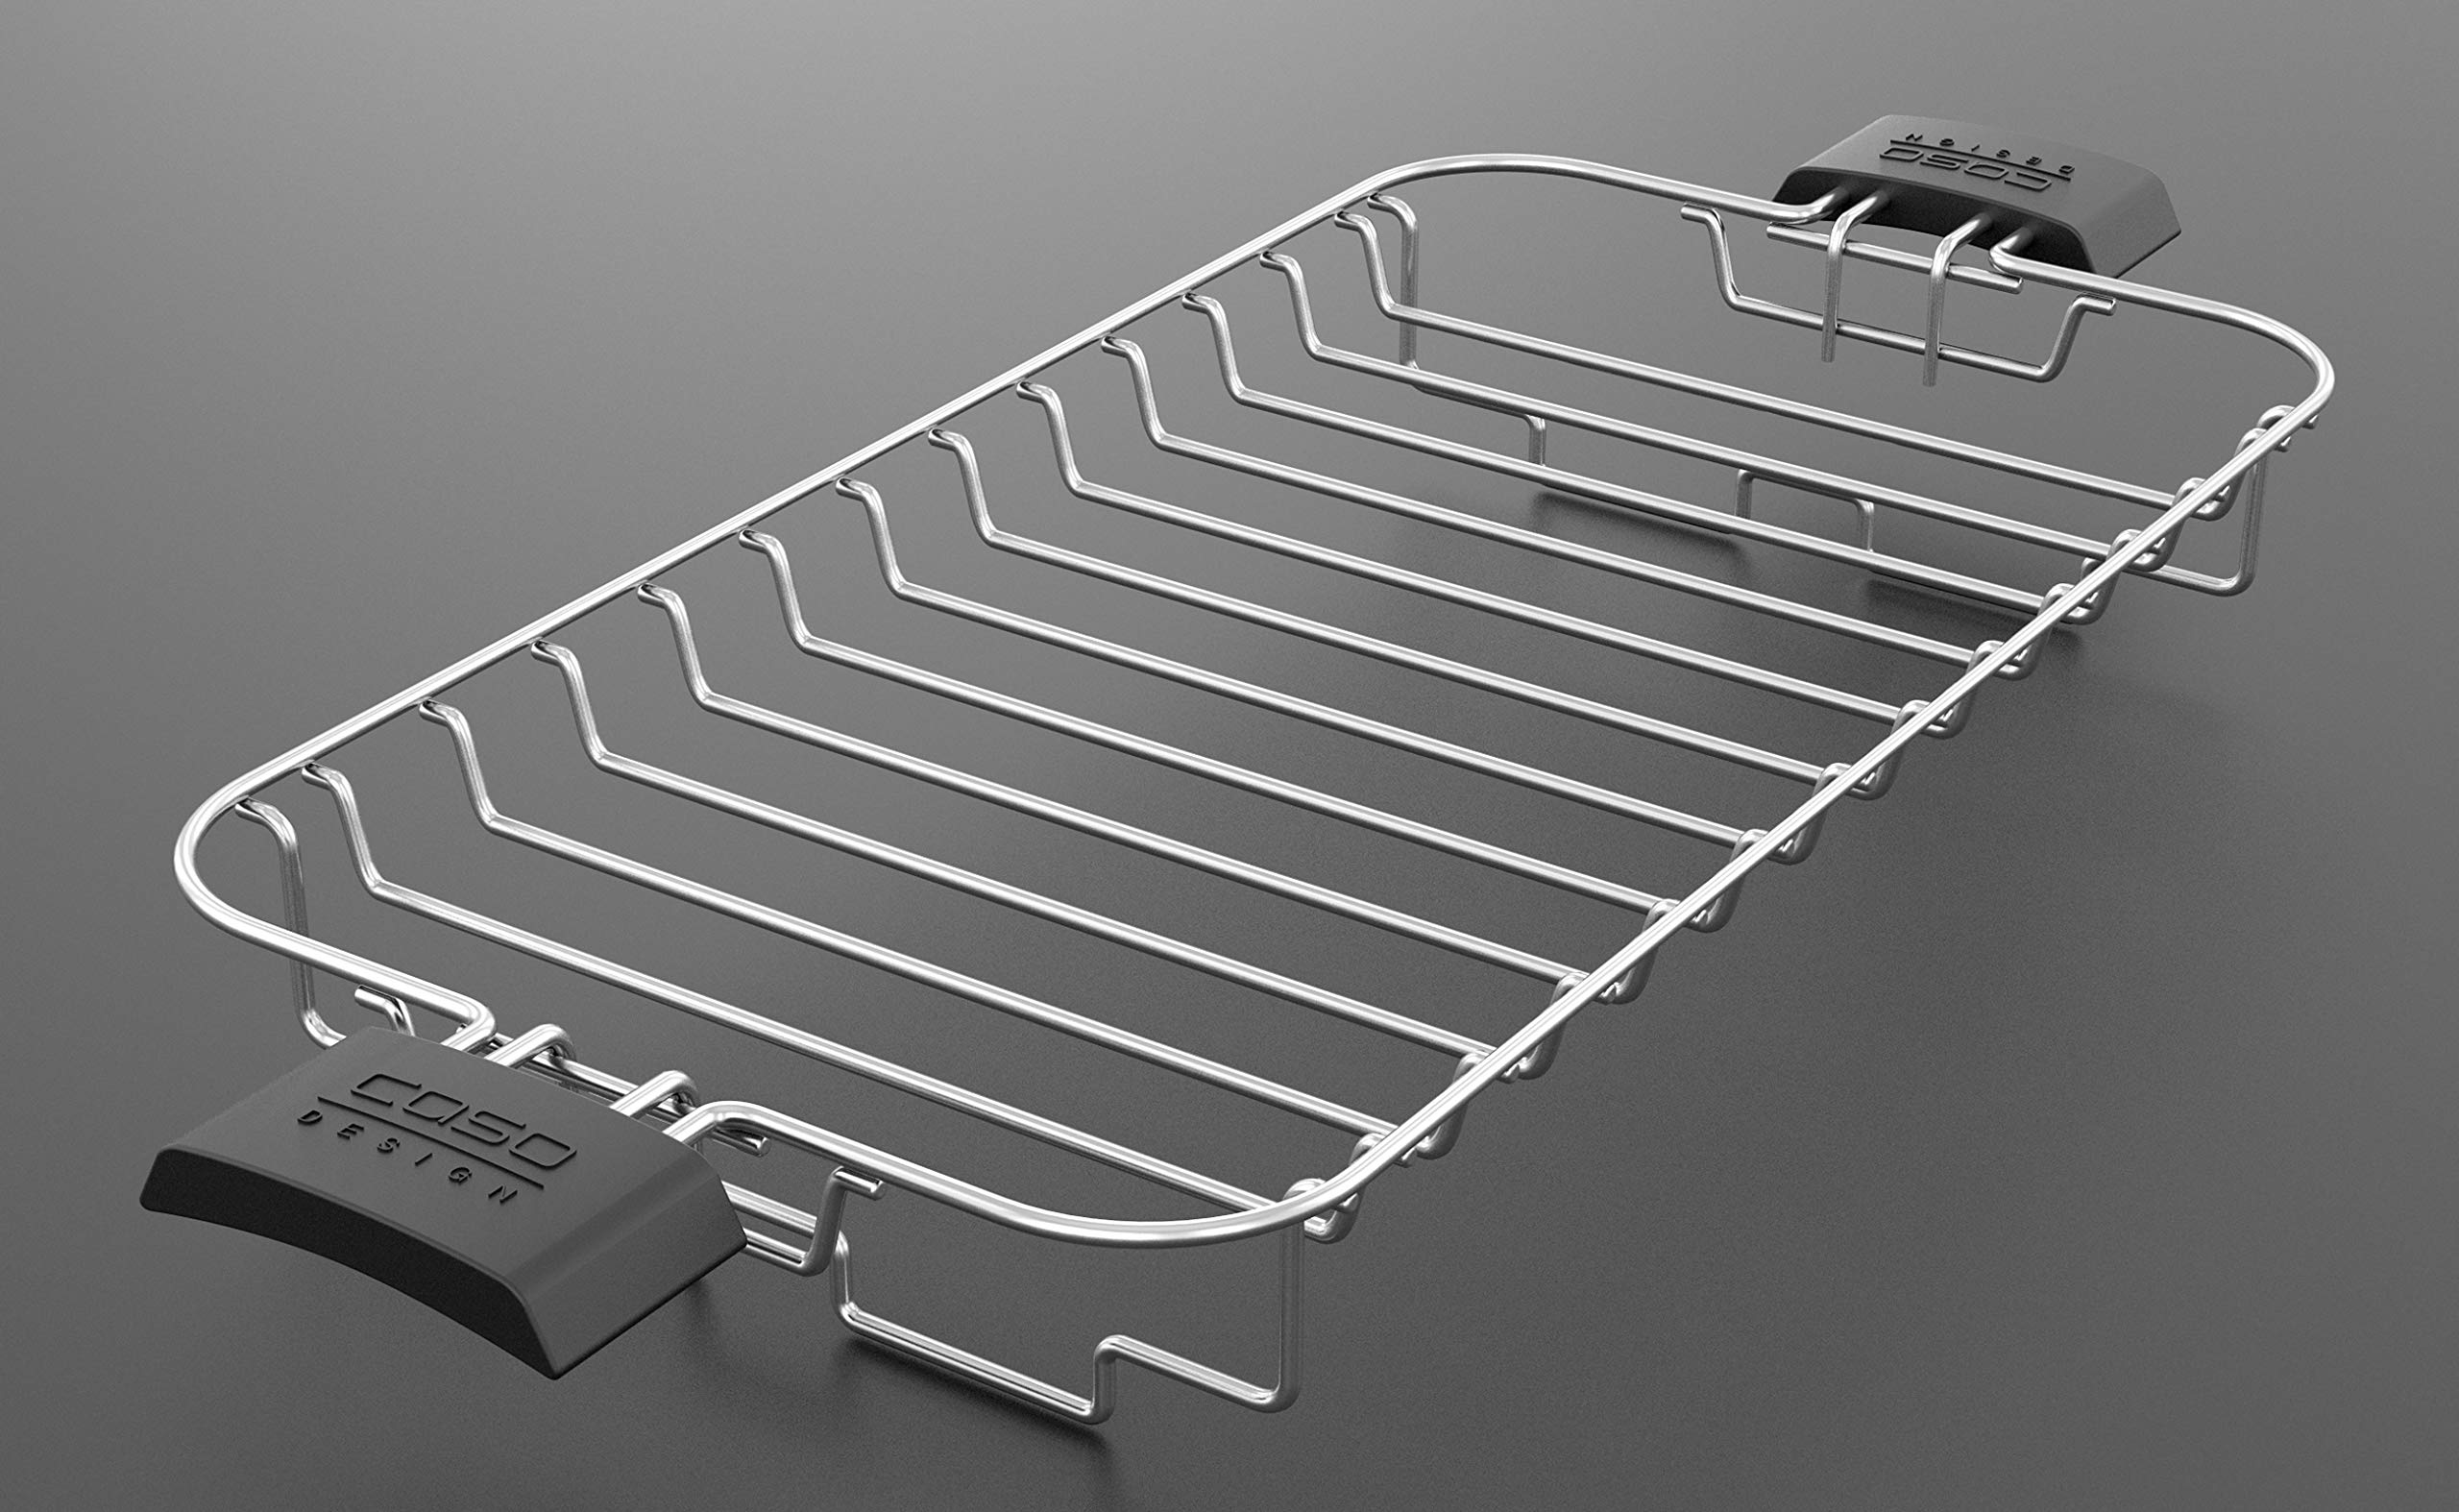 Caso Design INOX.4 Four-Slice Toaster with Wire Warming Basket Attachment, 4, Stainless by Caso Design (Image #12)